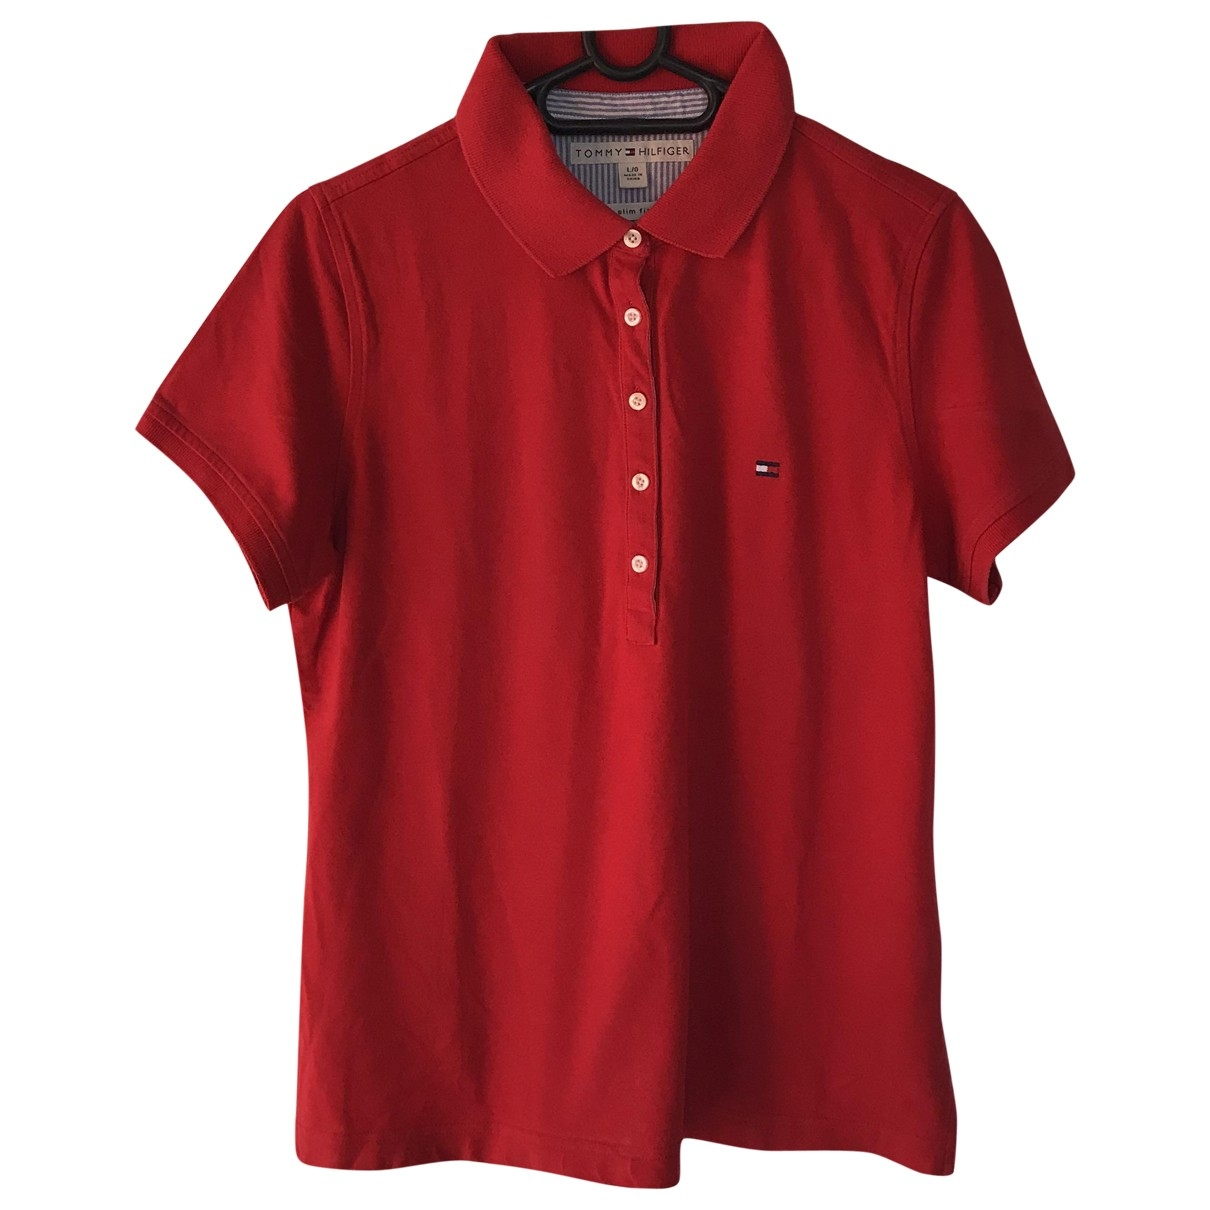 Tommy Hilfiger \N Red Cotton  top for Women L International